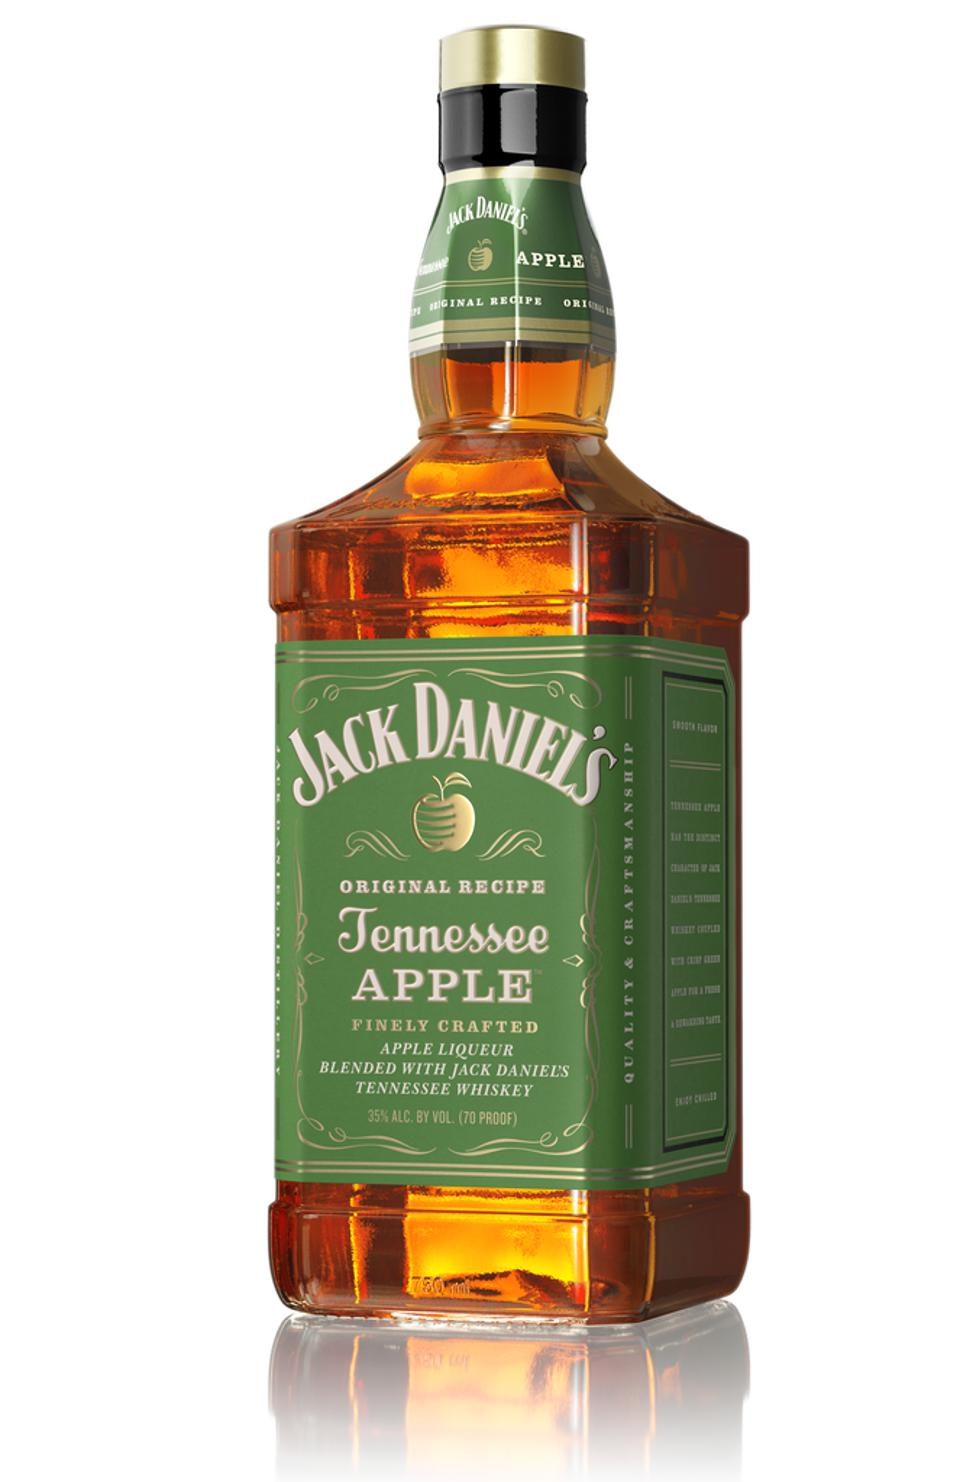 Bottle of Jack Daniel's Tennessee Apple set against a white background.